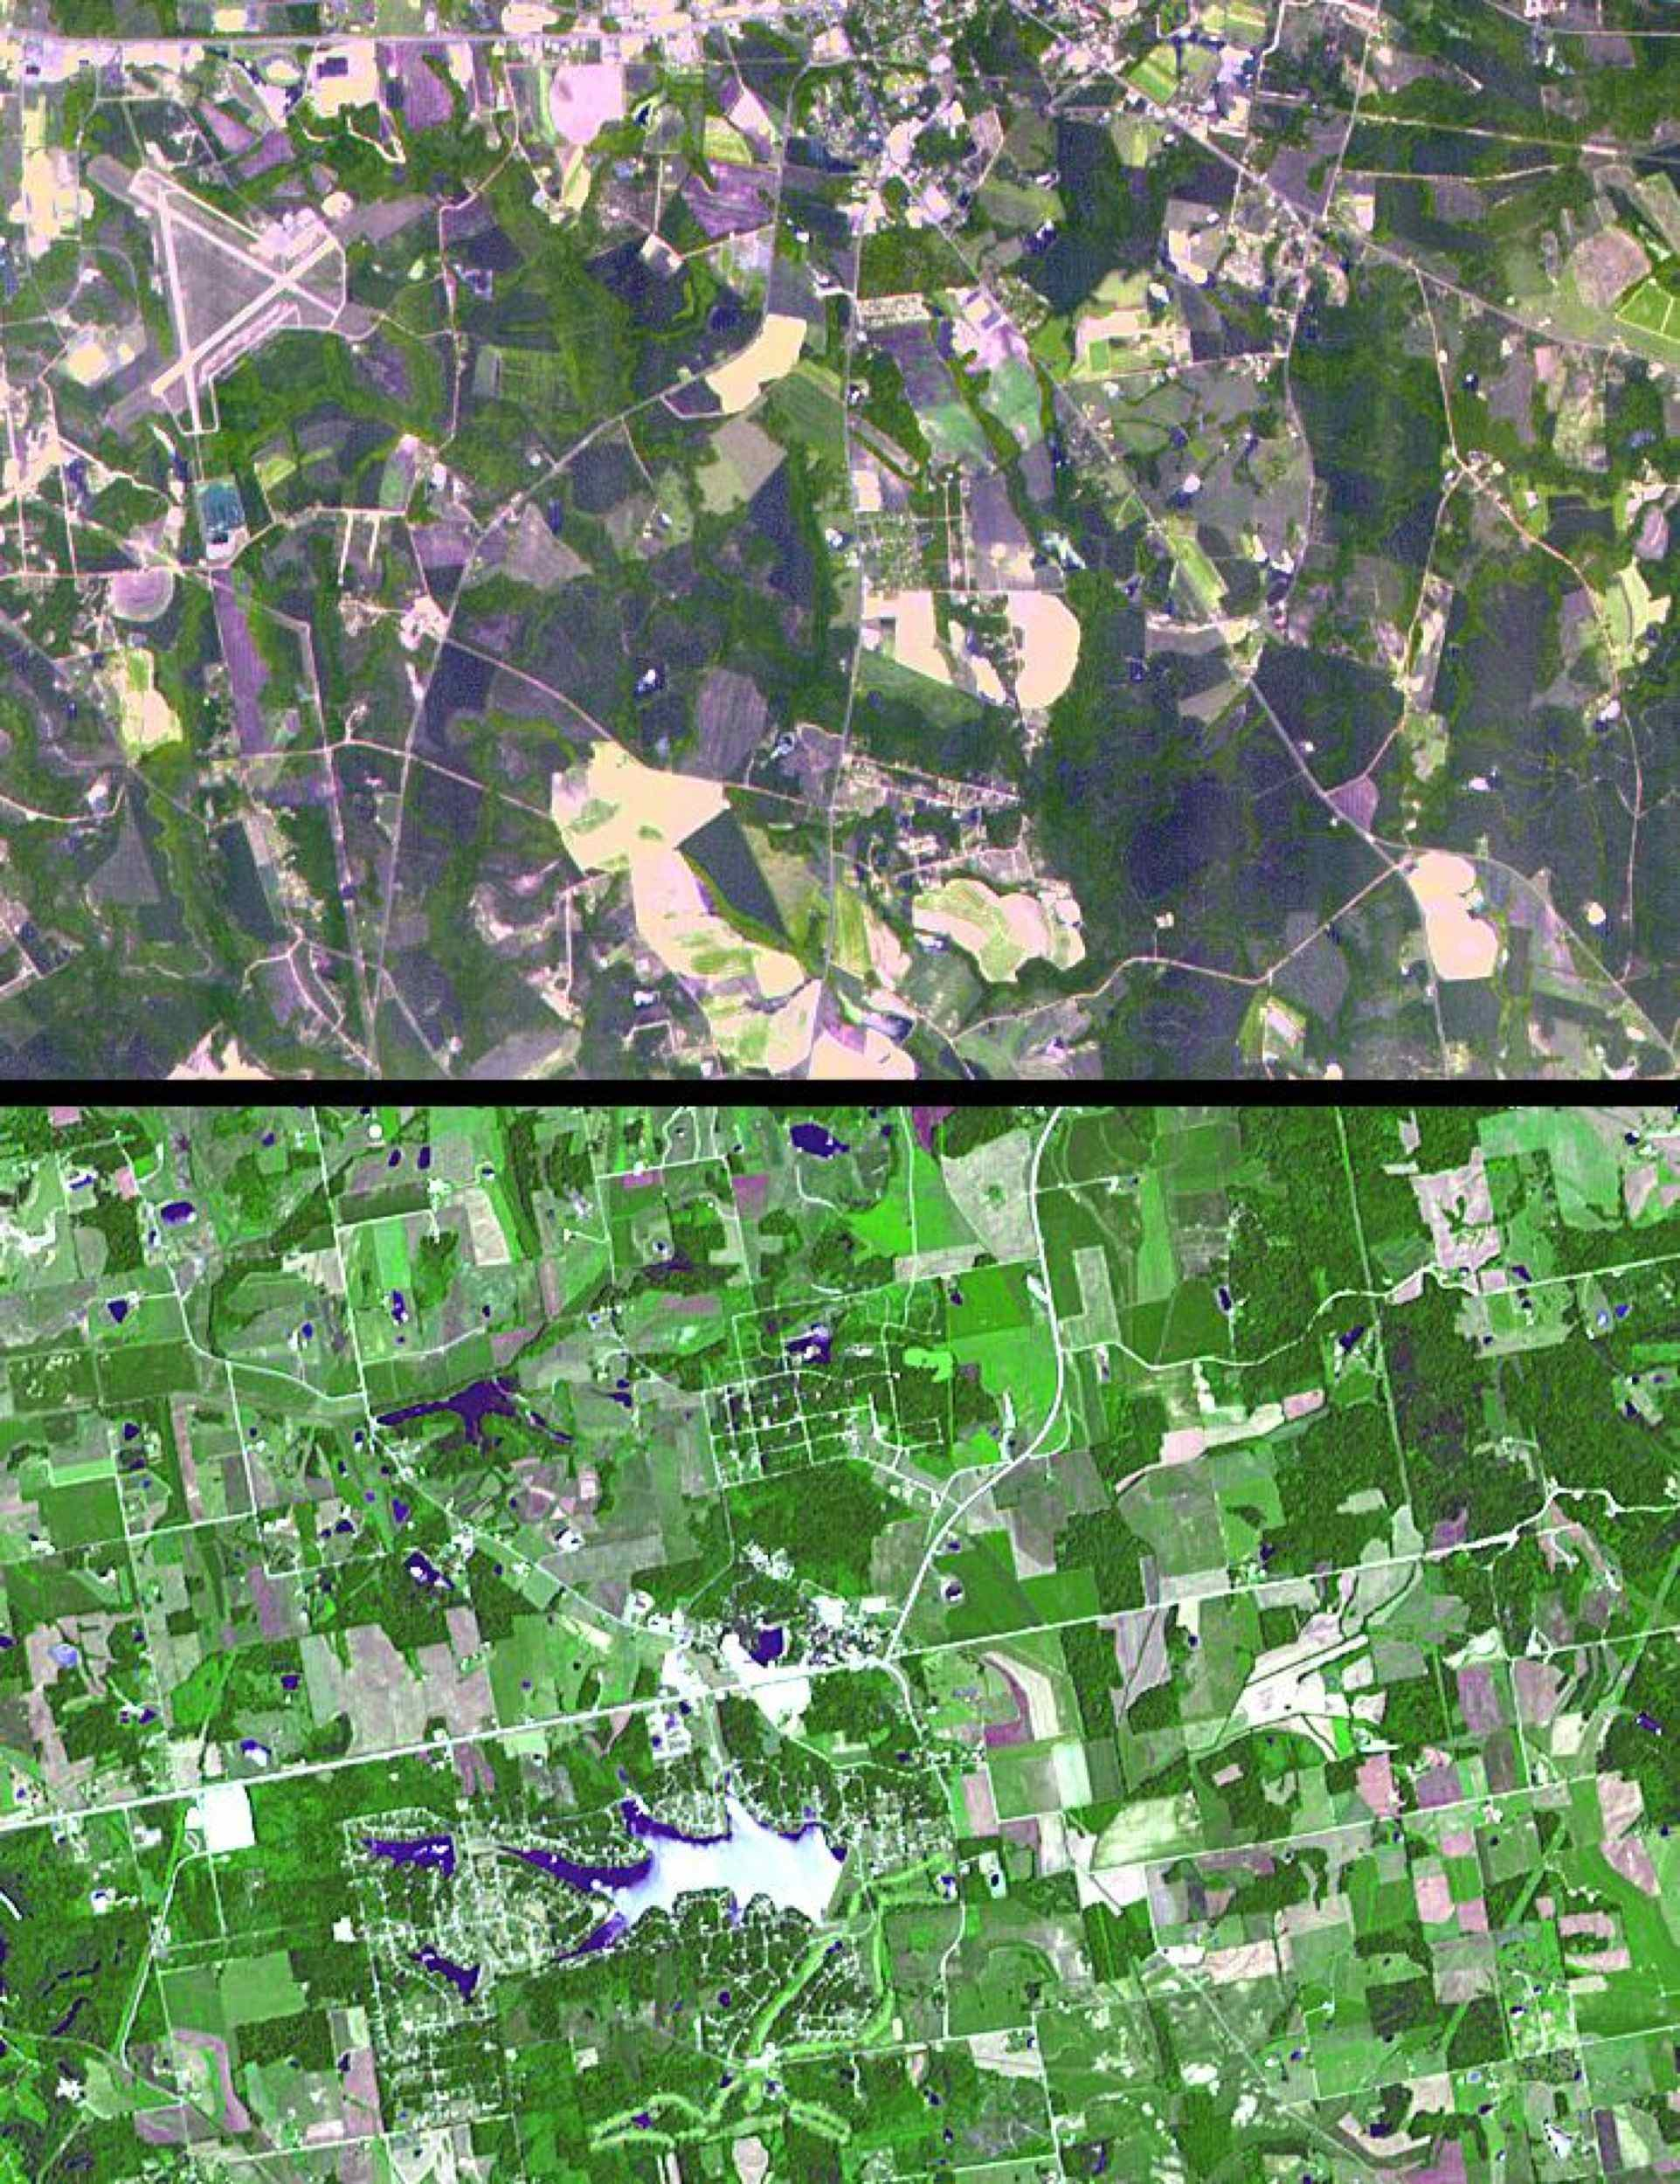 The towns of Santa Claus, Ga., (top) and Santa Claus, Ind. (bottom), are shown in these two images from the Advanced Spaceborne Thermal Emission and Reflection Radiometer (ASTER) instrument on NASA's Terra satellite.